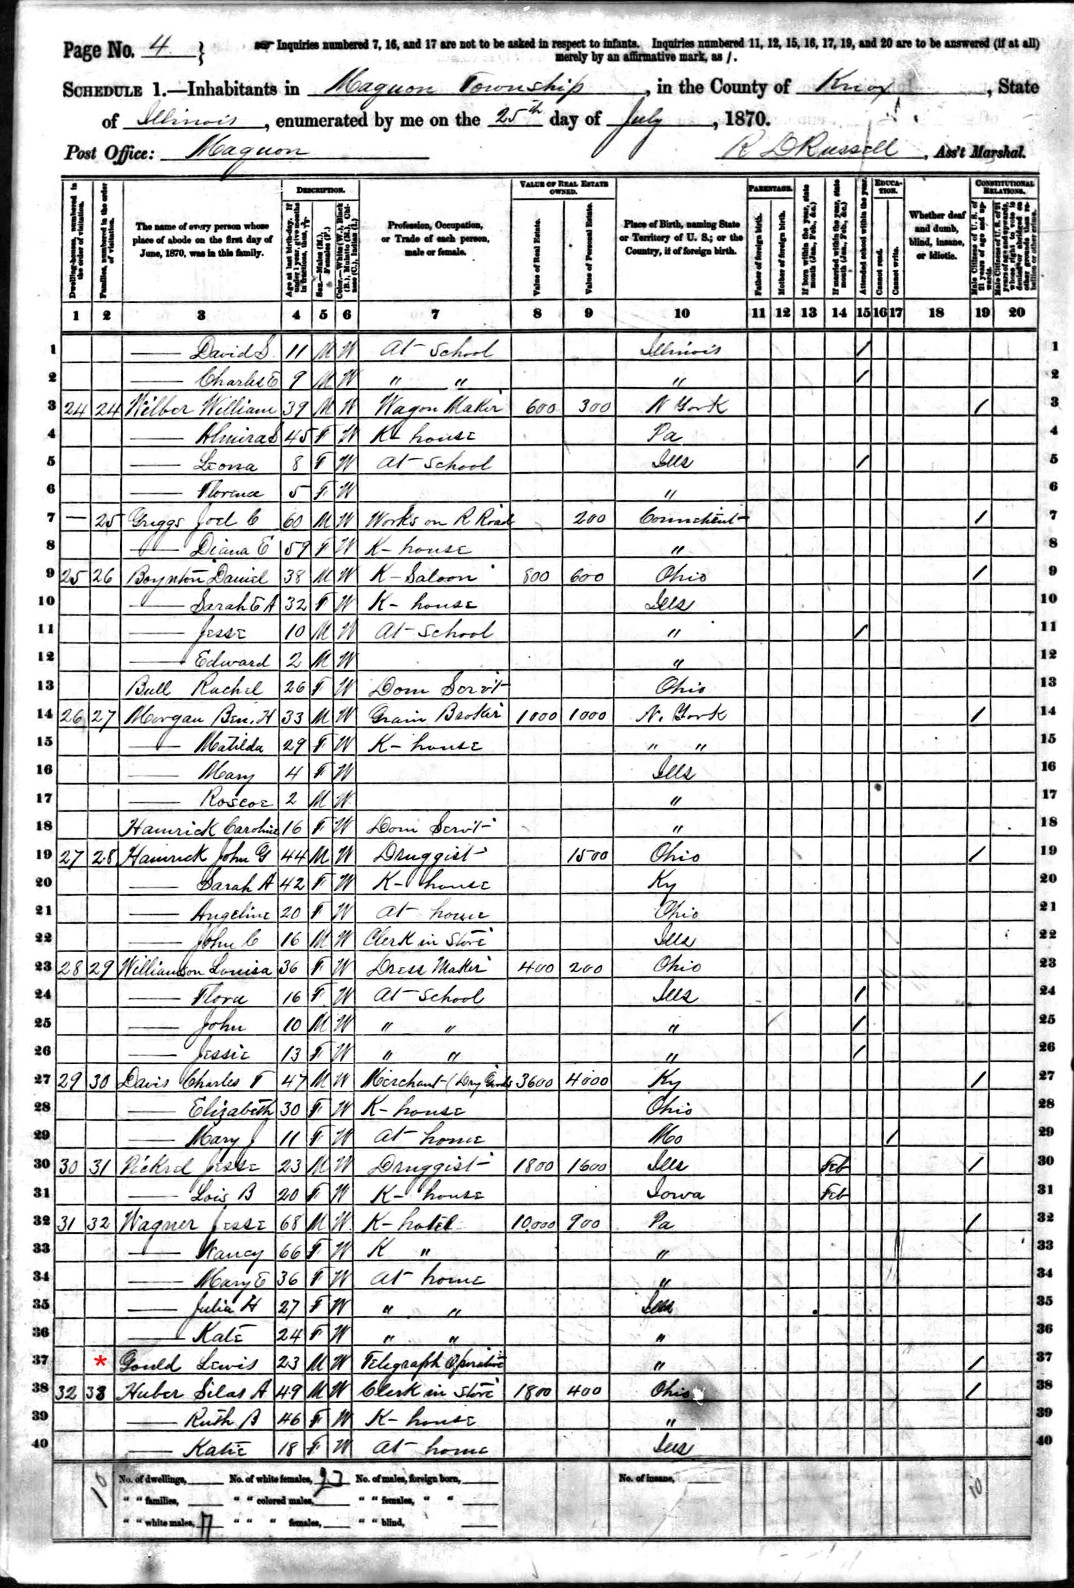 Illinois bureau county ohio - Wyanet Bureau County Illinois And Was Employed As A Telegraph Operator At The Chicago Rock Island Pacific Chicago Burlington Quincy Junction At Wyanet